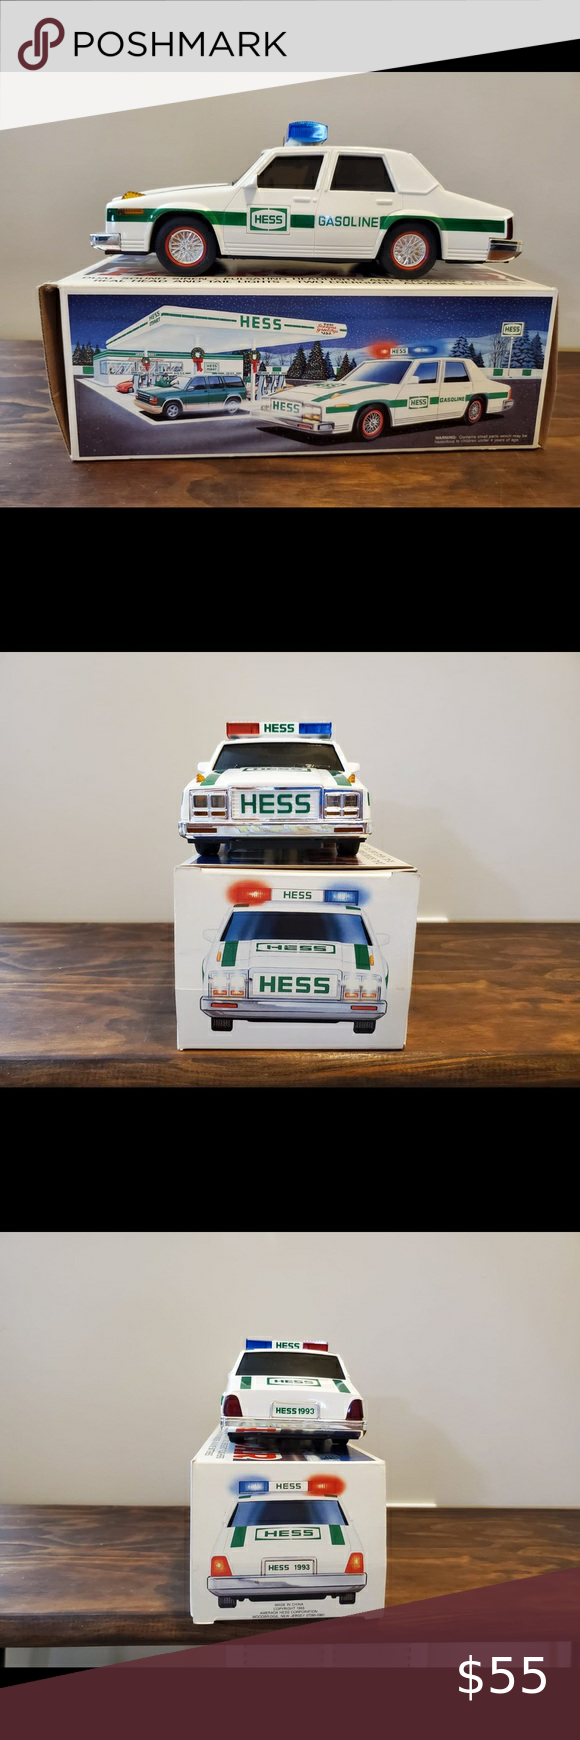 1993 Hess Patrol Car New Hess 1993 Patrol Car With Box Excellent Condition Only Taken Out Of Box F Disney Cars Diecast Thomas The Train Toys Hess Toy Trucks [ 1740 x 580 Pixel ]